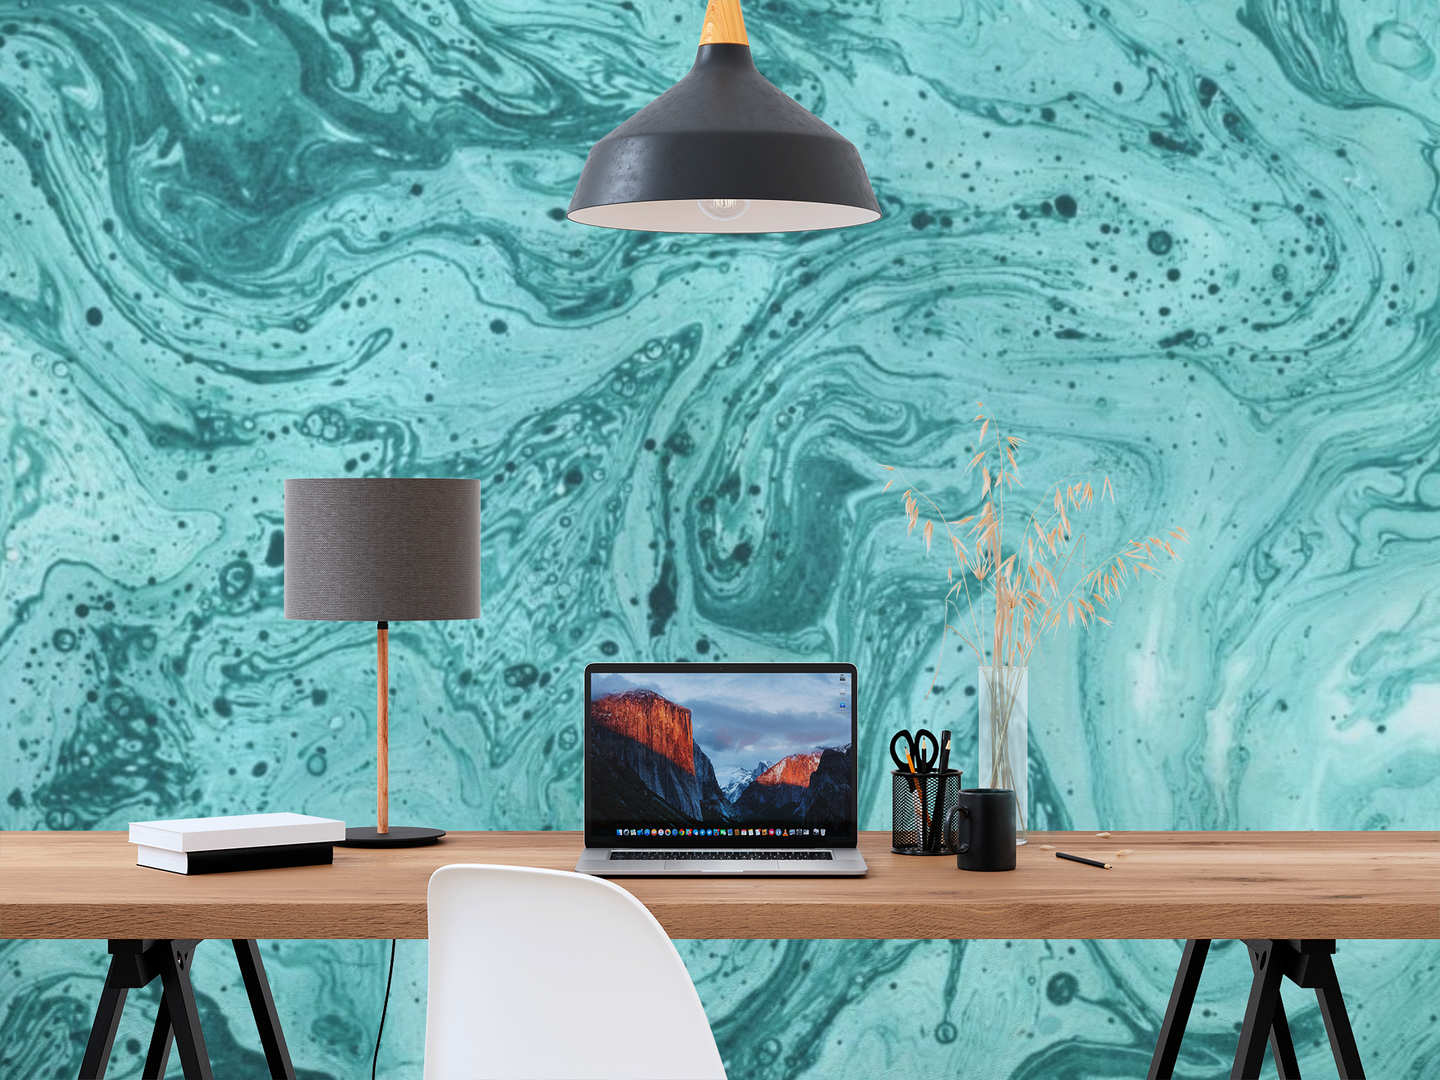 Abstract Blue Painting 2 - 0344 - Wall Murals Printing - wall art